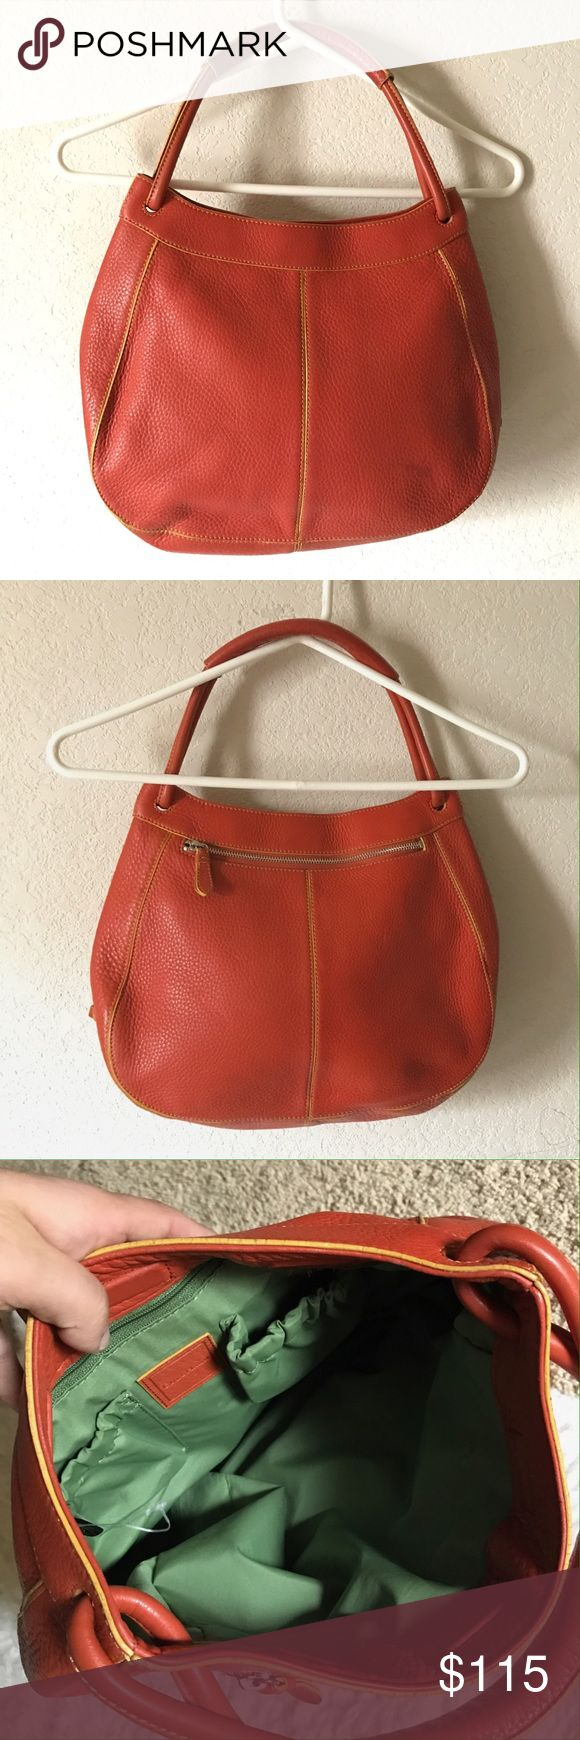 Cole Haan Hobo Shoulder Bag Cole Haan Hobo Shoulder Bag Color: Orange No Stains or holes. Last picture is of the pocket within the bag. Cole Haan Bags Hobos